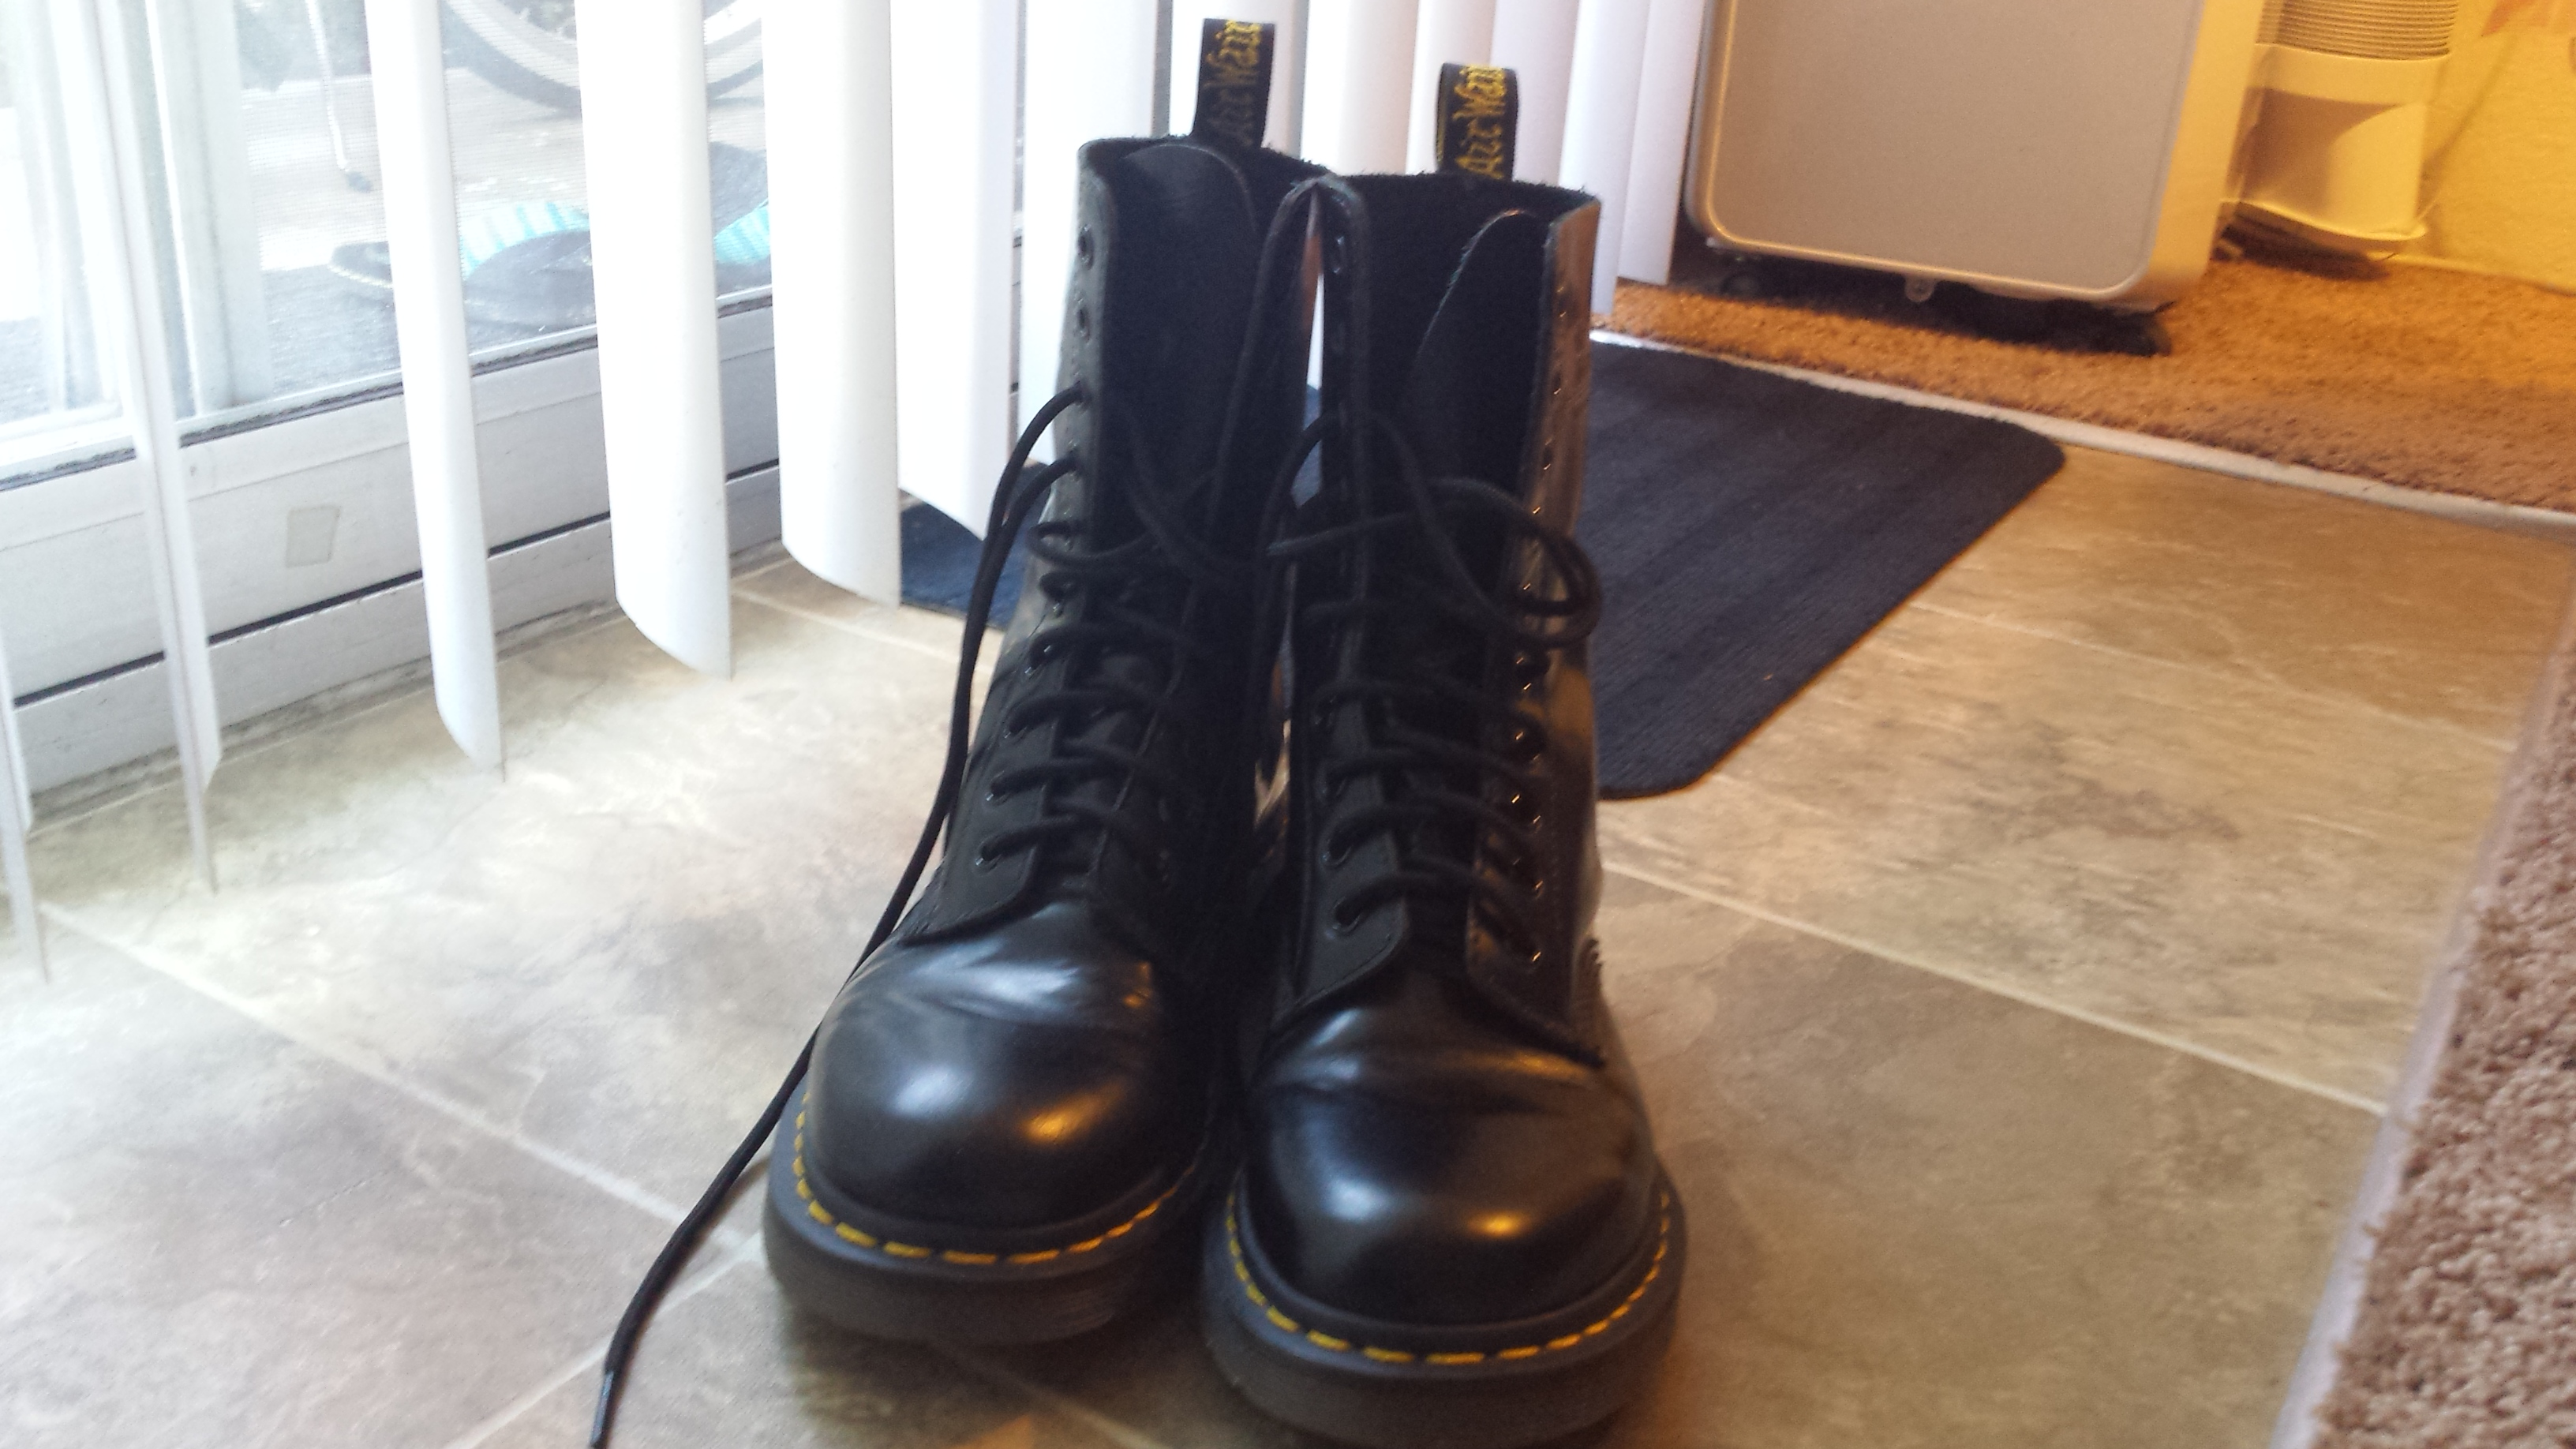 ... Dr. Martens 1490 Size 7 10 Eye Black Leather Boots - Thumbnail 2 ... 0068228f4